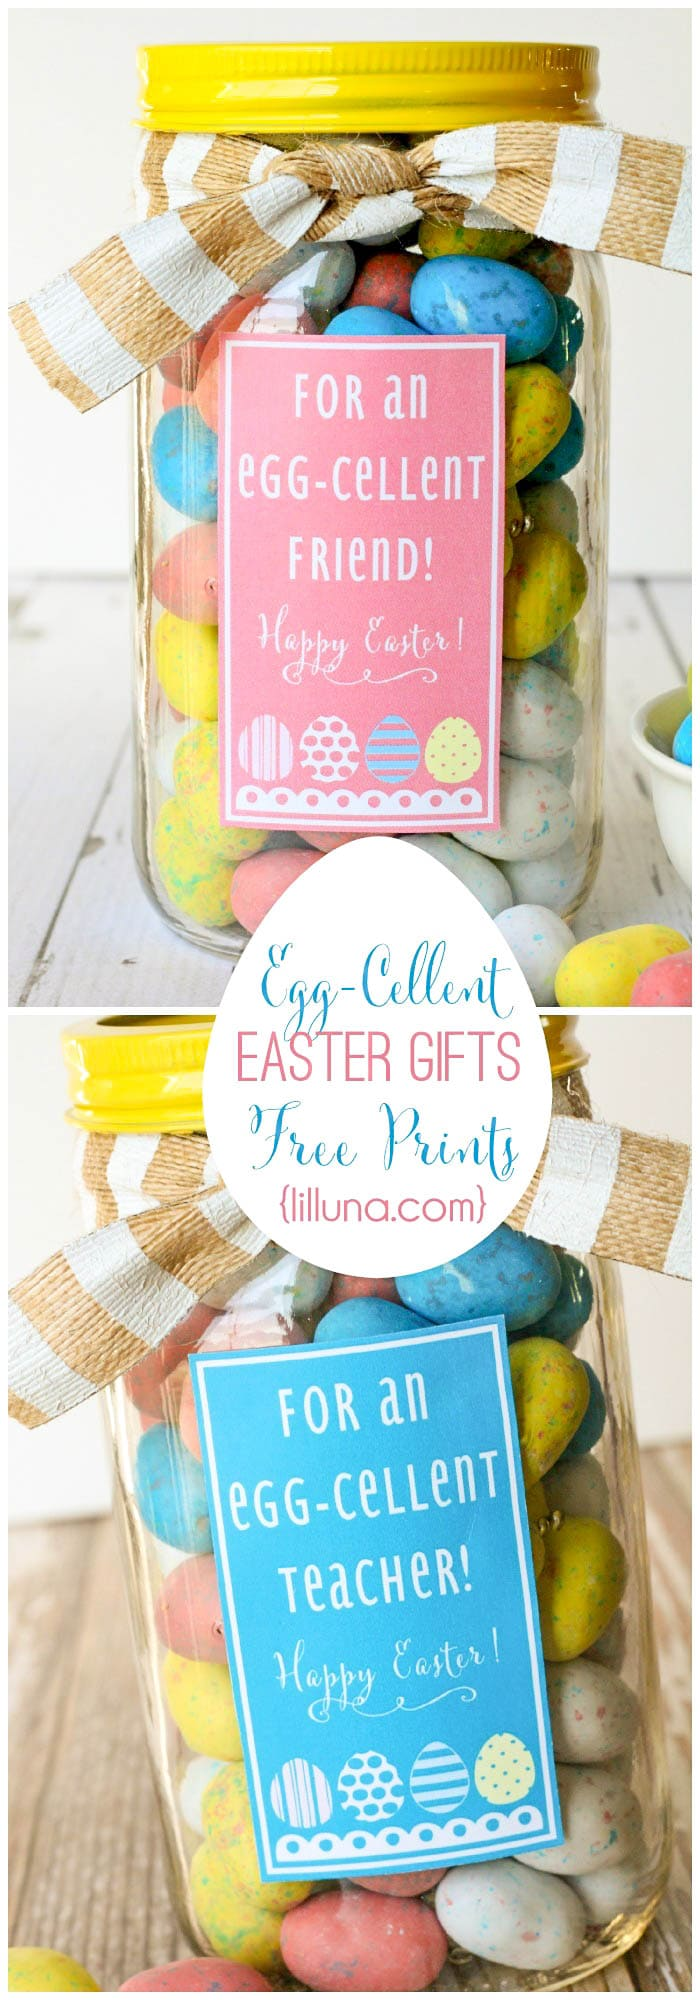 Egg-Cellent Easter Gift Ideas - cute and inexpensive! { lilluna.com } Just fill with your fav Easter treat!